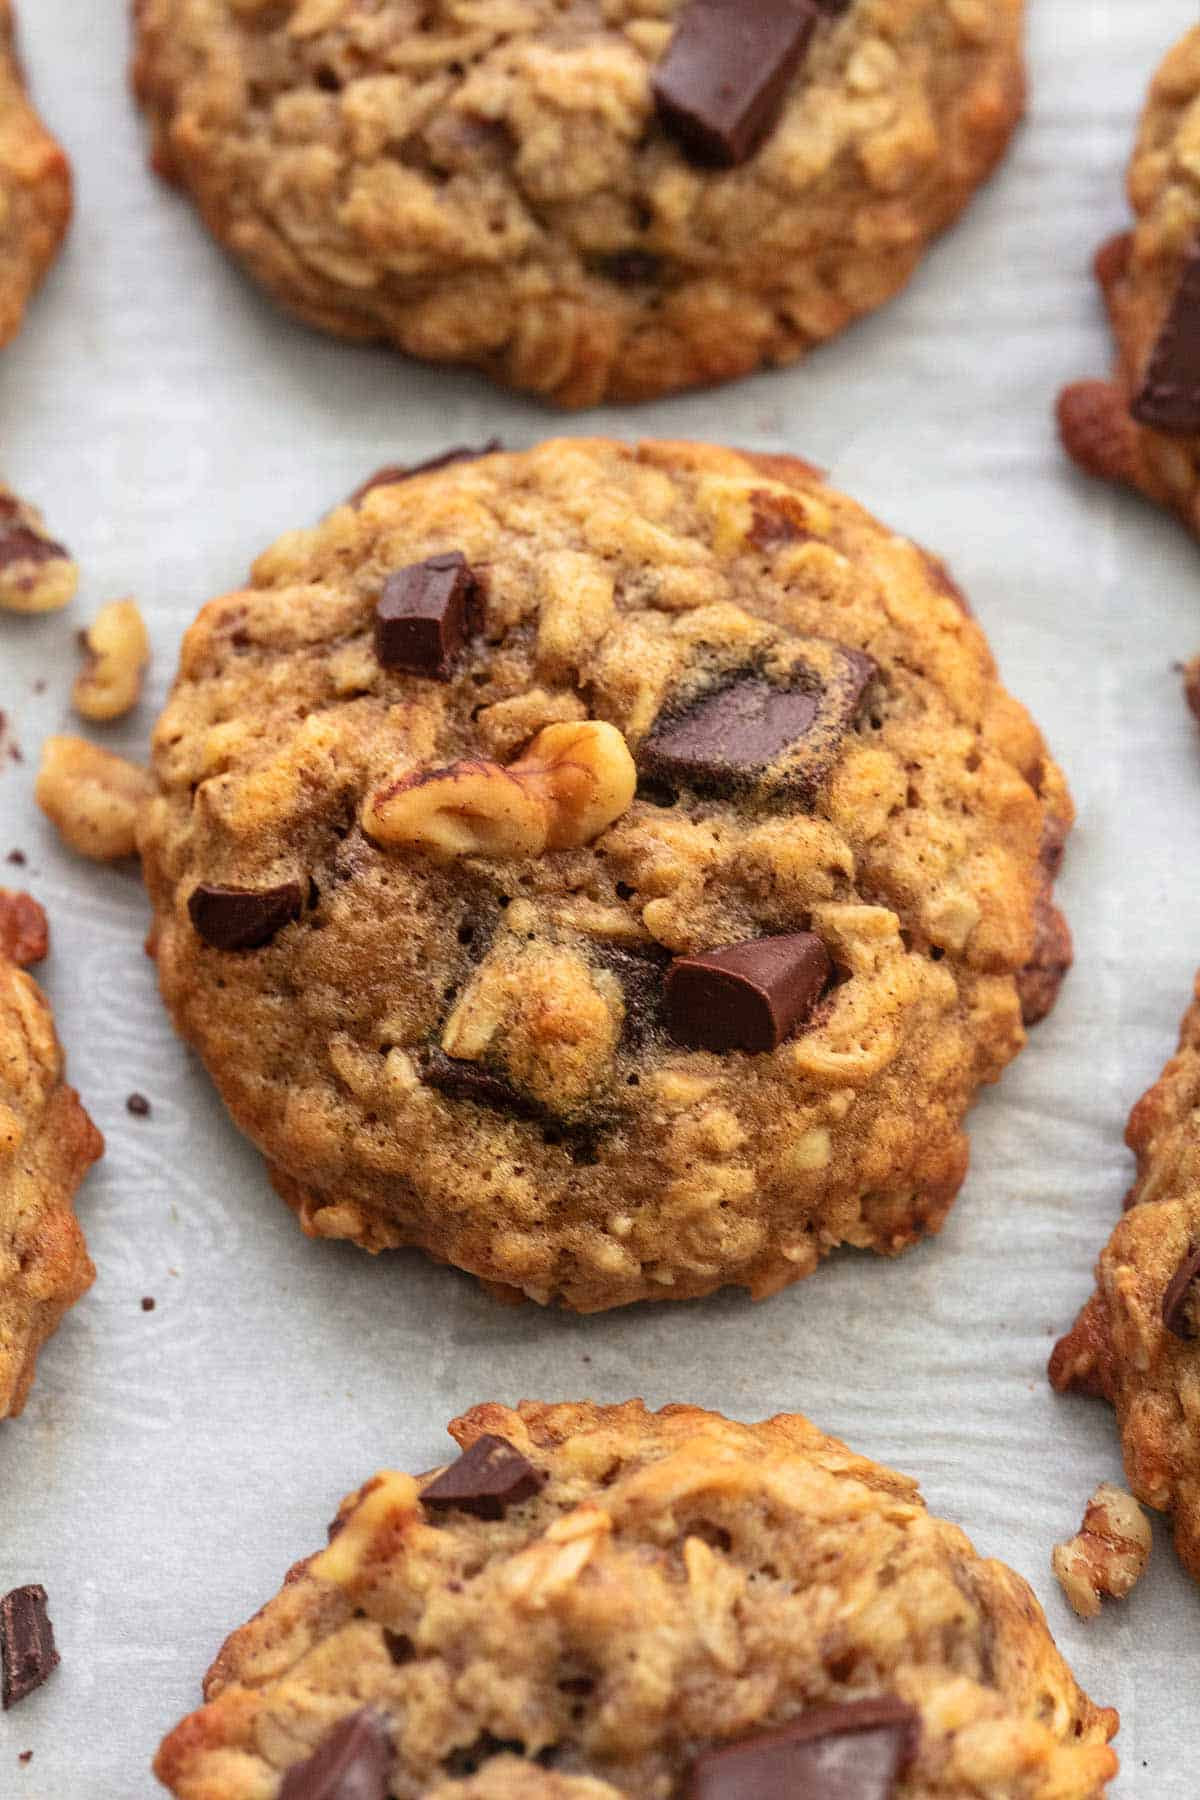 up close brown cookie with walnut pieces and chocolate chunks